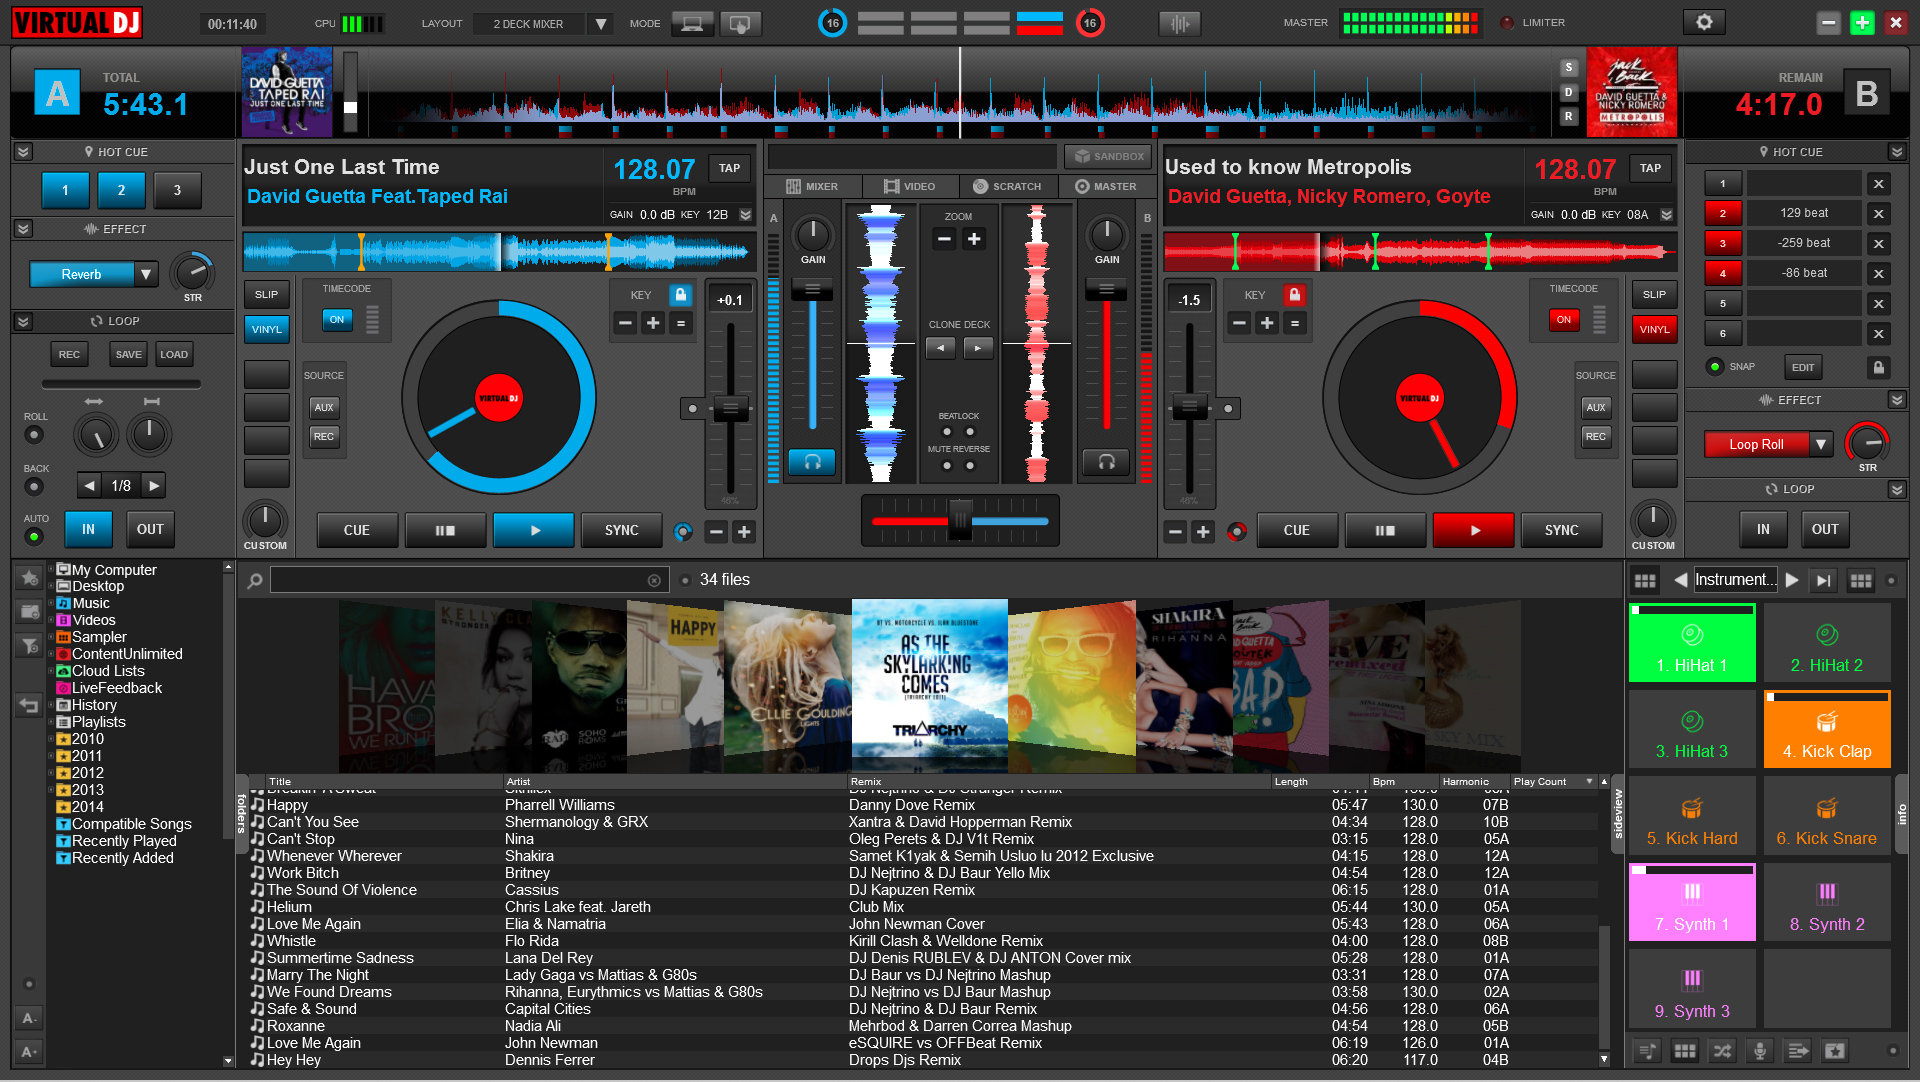 free download virtual dj for windows 7 ultimate 32 bit